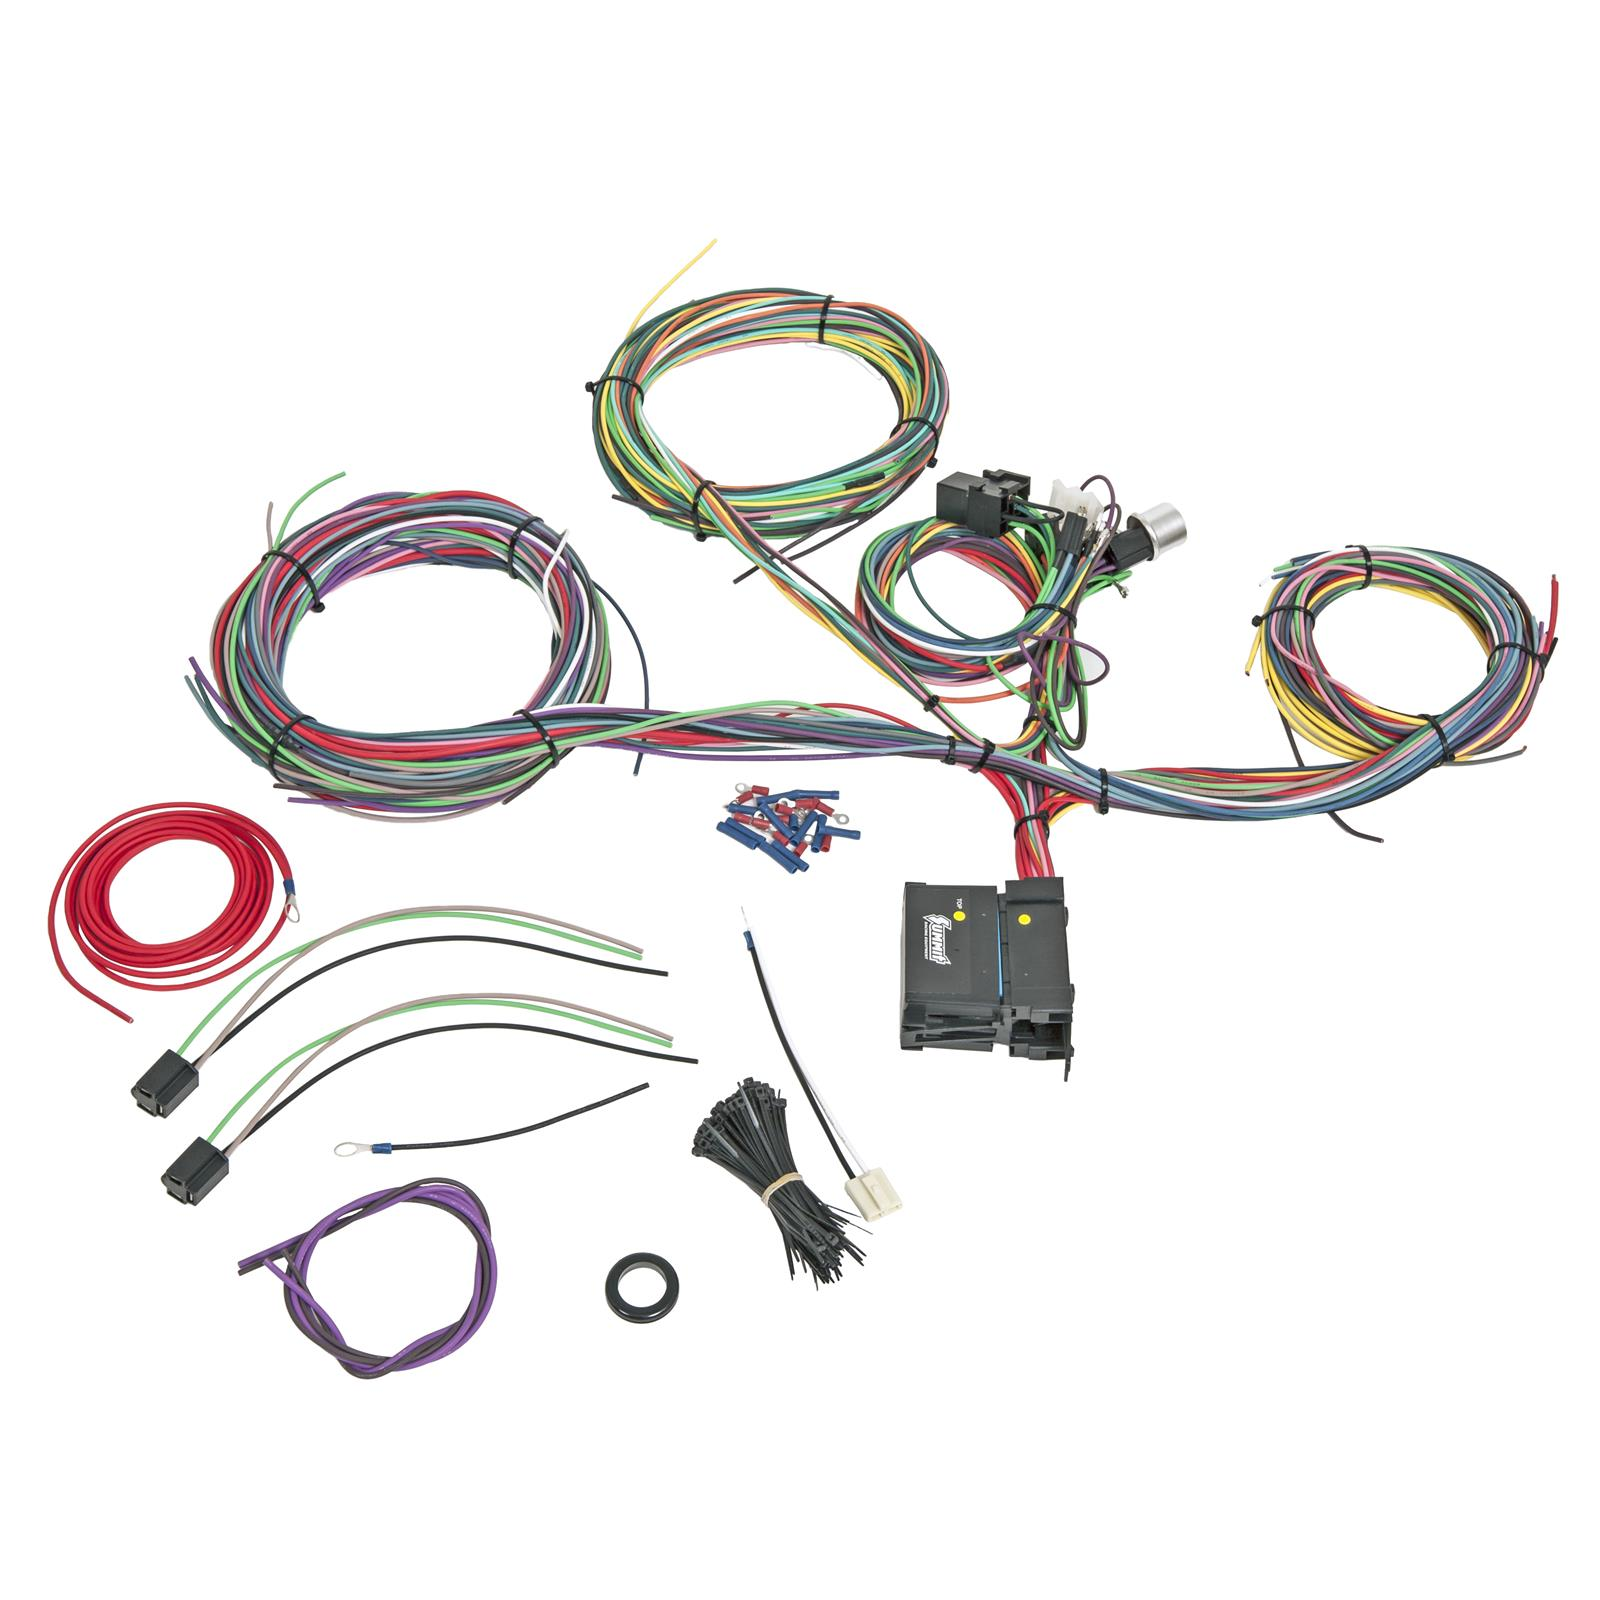 sum 890021_xl summit racing� 18 circuit universal wiring harnesses sum 890021 packard wiring harness at suagrazia.org